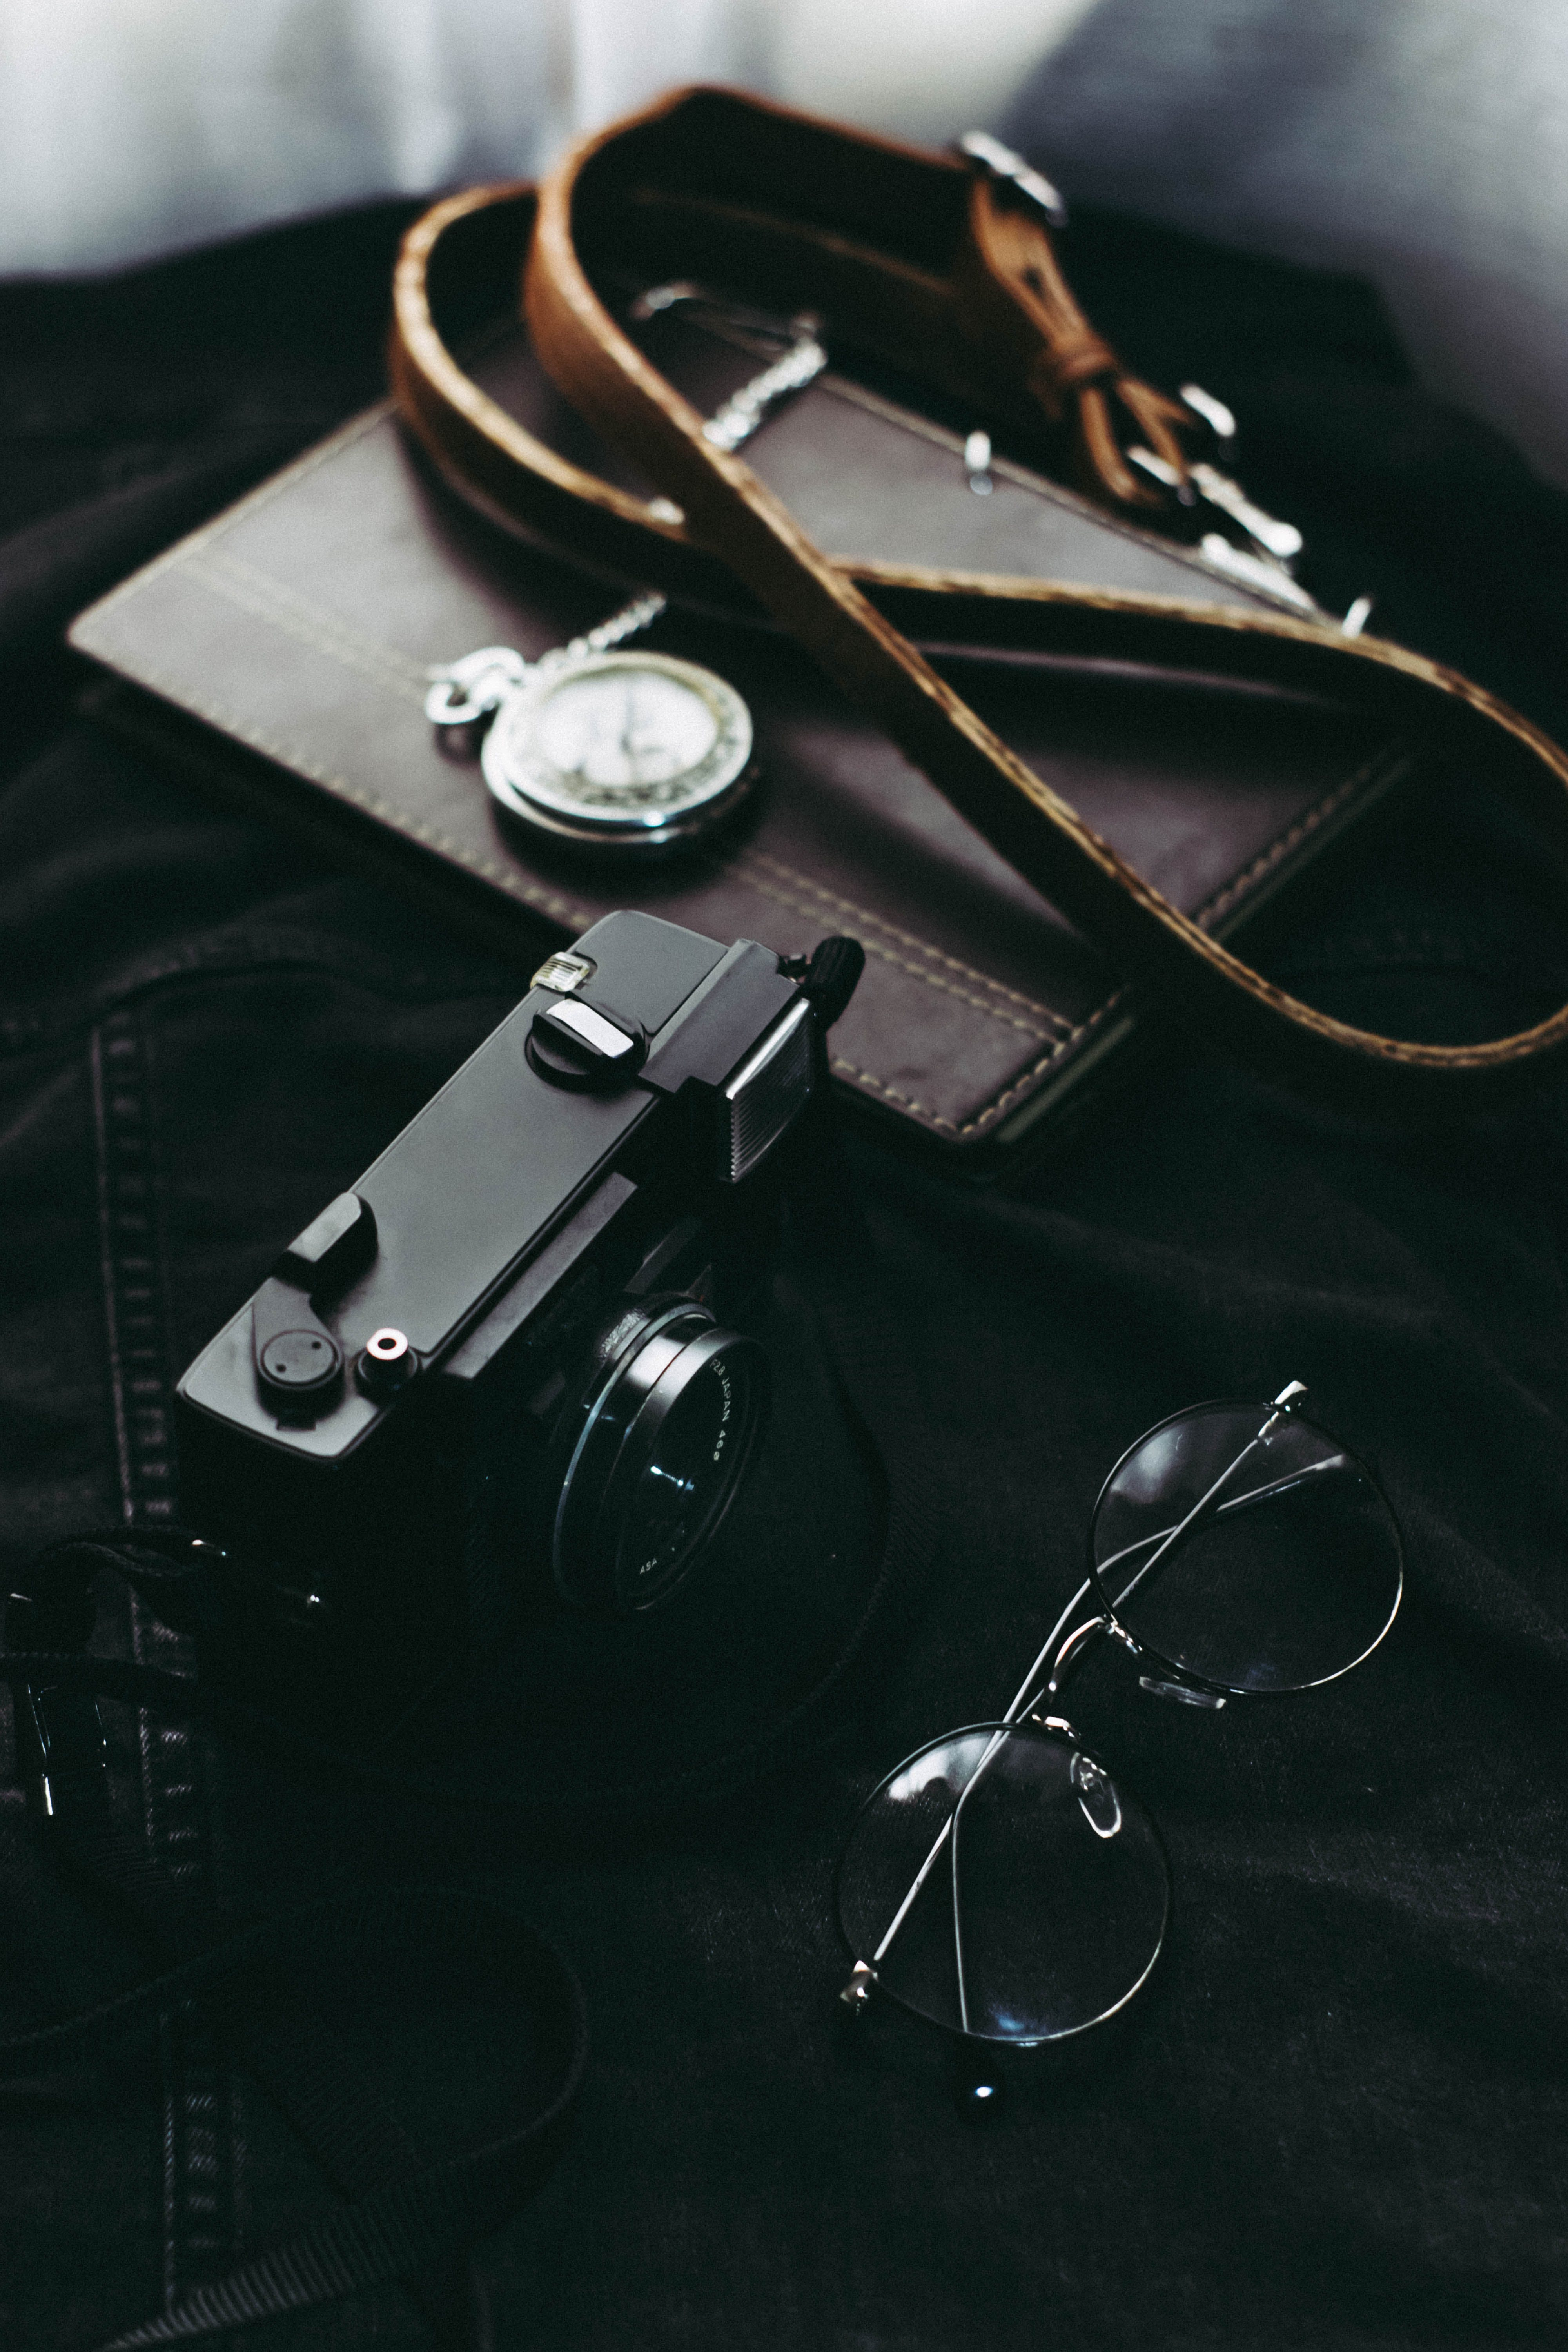 Black Camera Beside Pouch and Eyeglasses